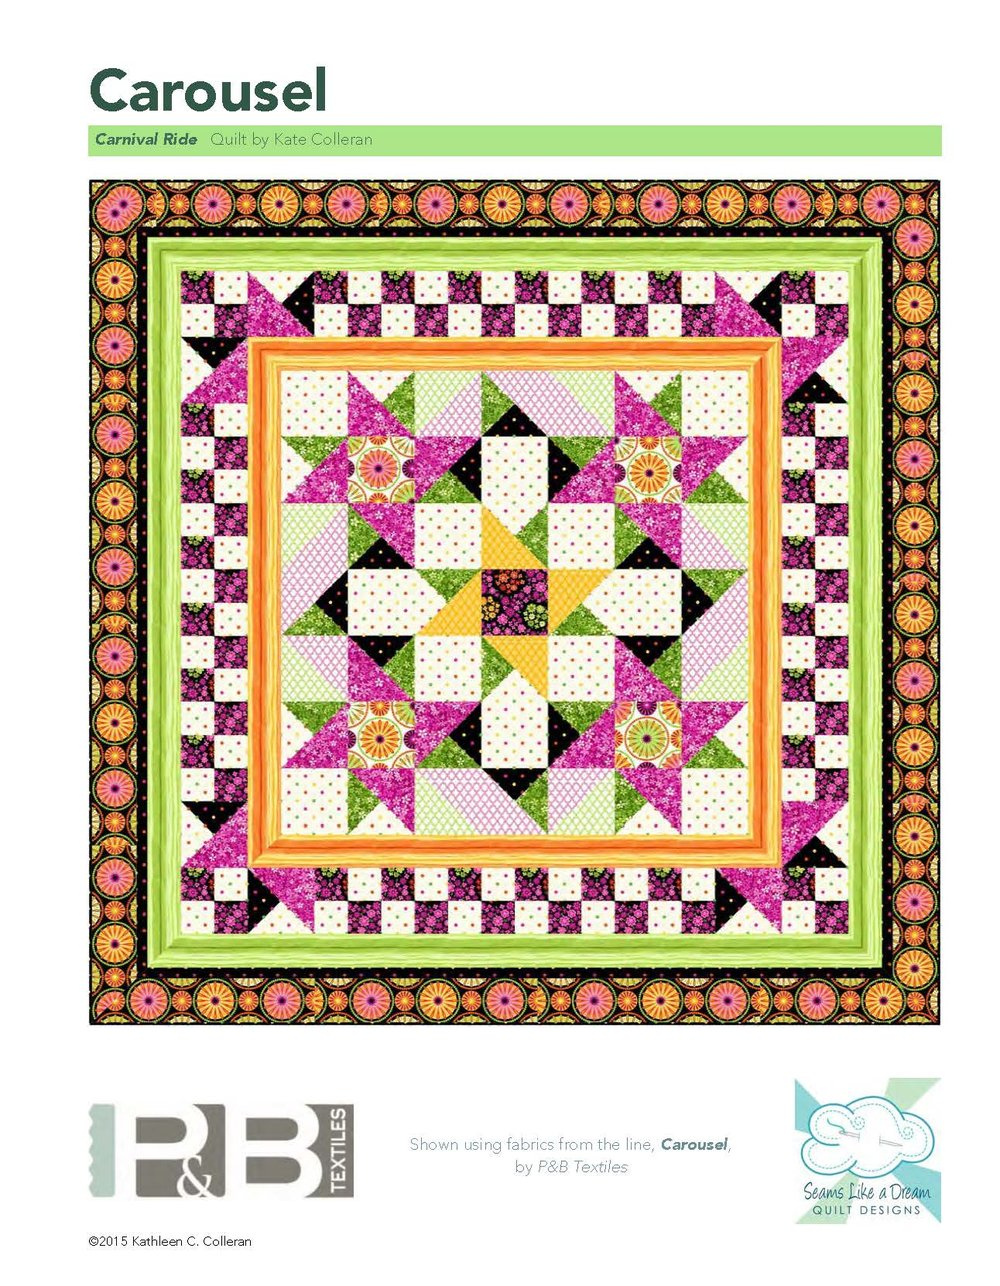 Carnival Ride Quilt Pattern by Kate Colleran Carousel